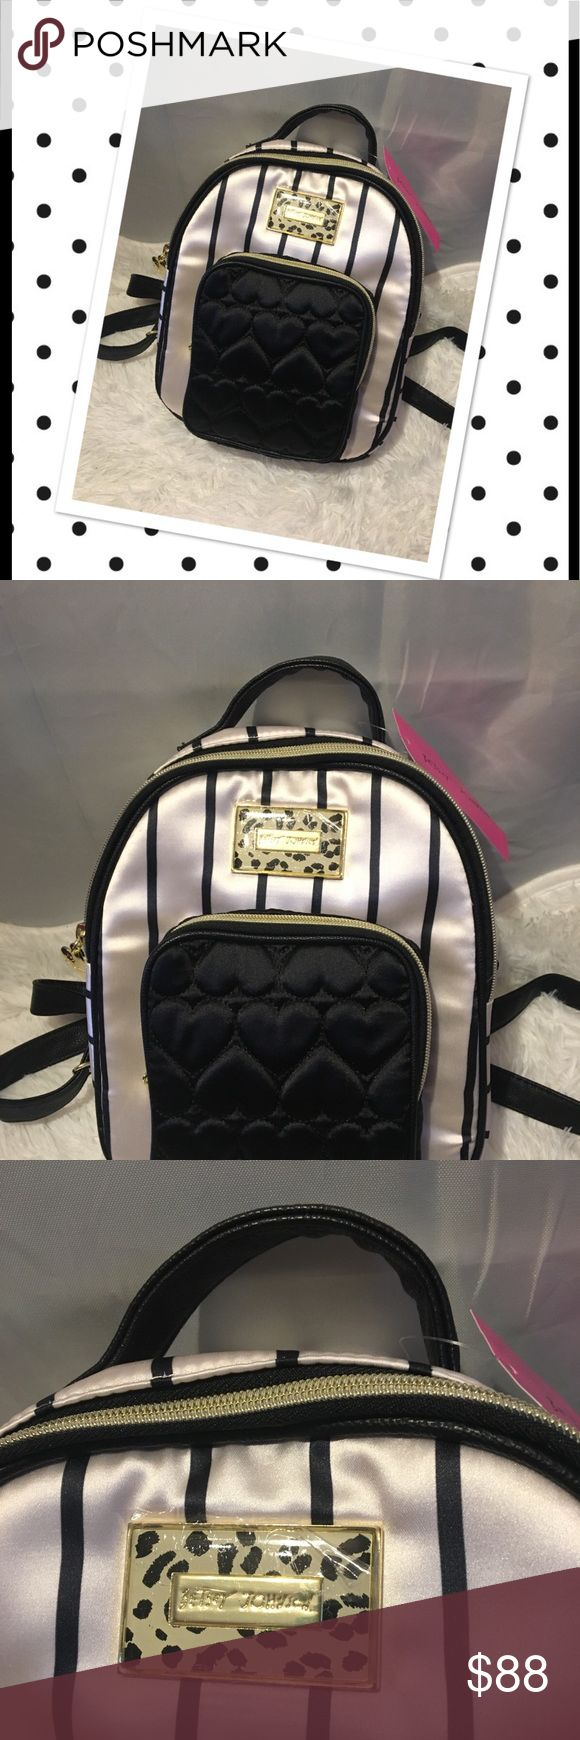 Betsey Johnson mini black white striped backpack Beautiful black & white striped Betsey Johnson Backpack. 100% polyester and lining. Comes from a smoke-free home. Please see my other items - bundle and save! Betsey Johnson Bags Backpacks